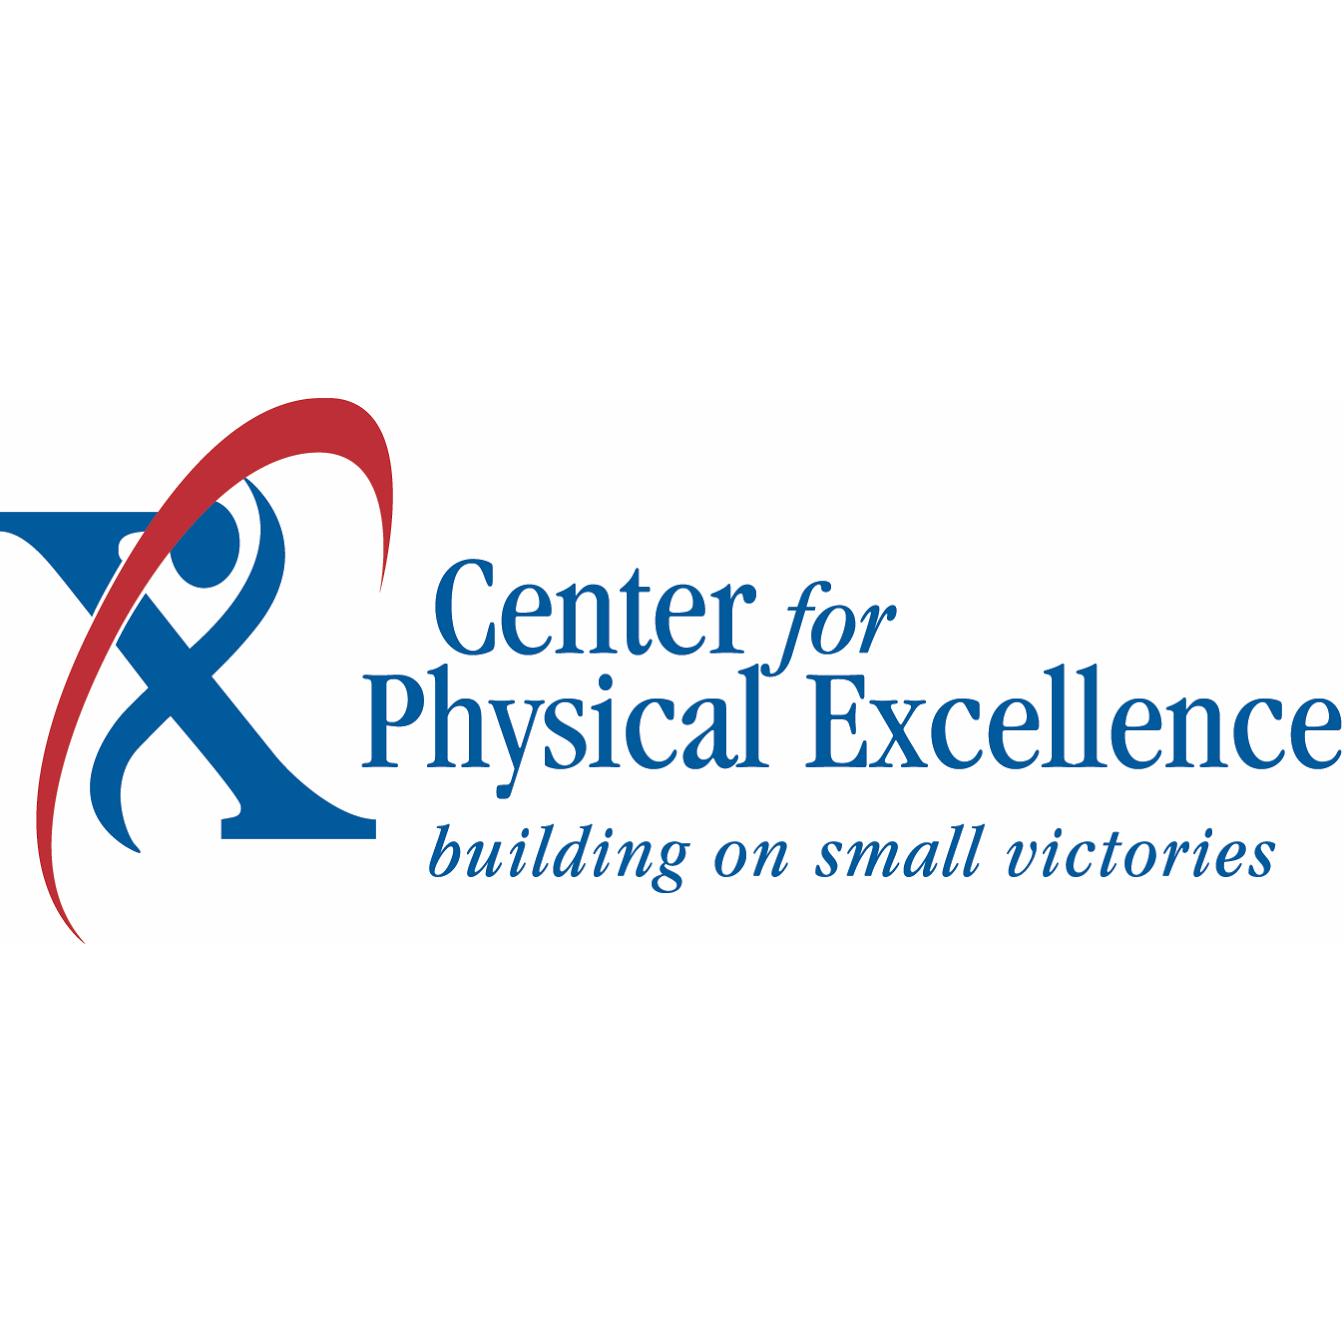 Center For Physical Excellence - Prescott, AZ - Physical Therapy & Rehab